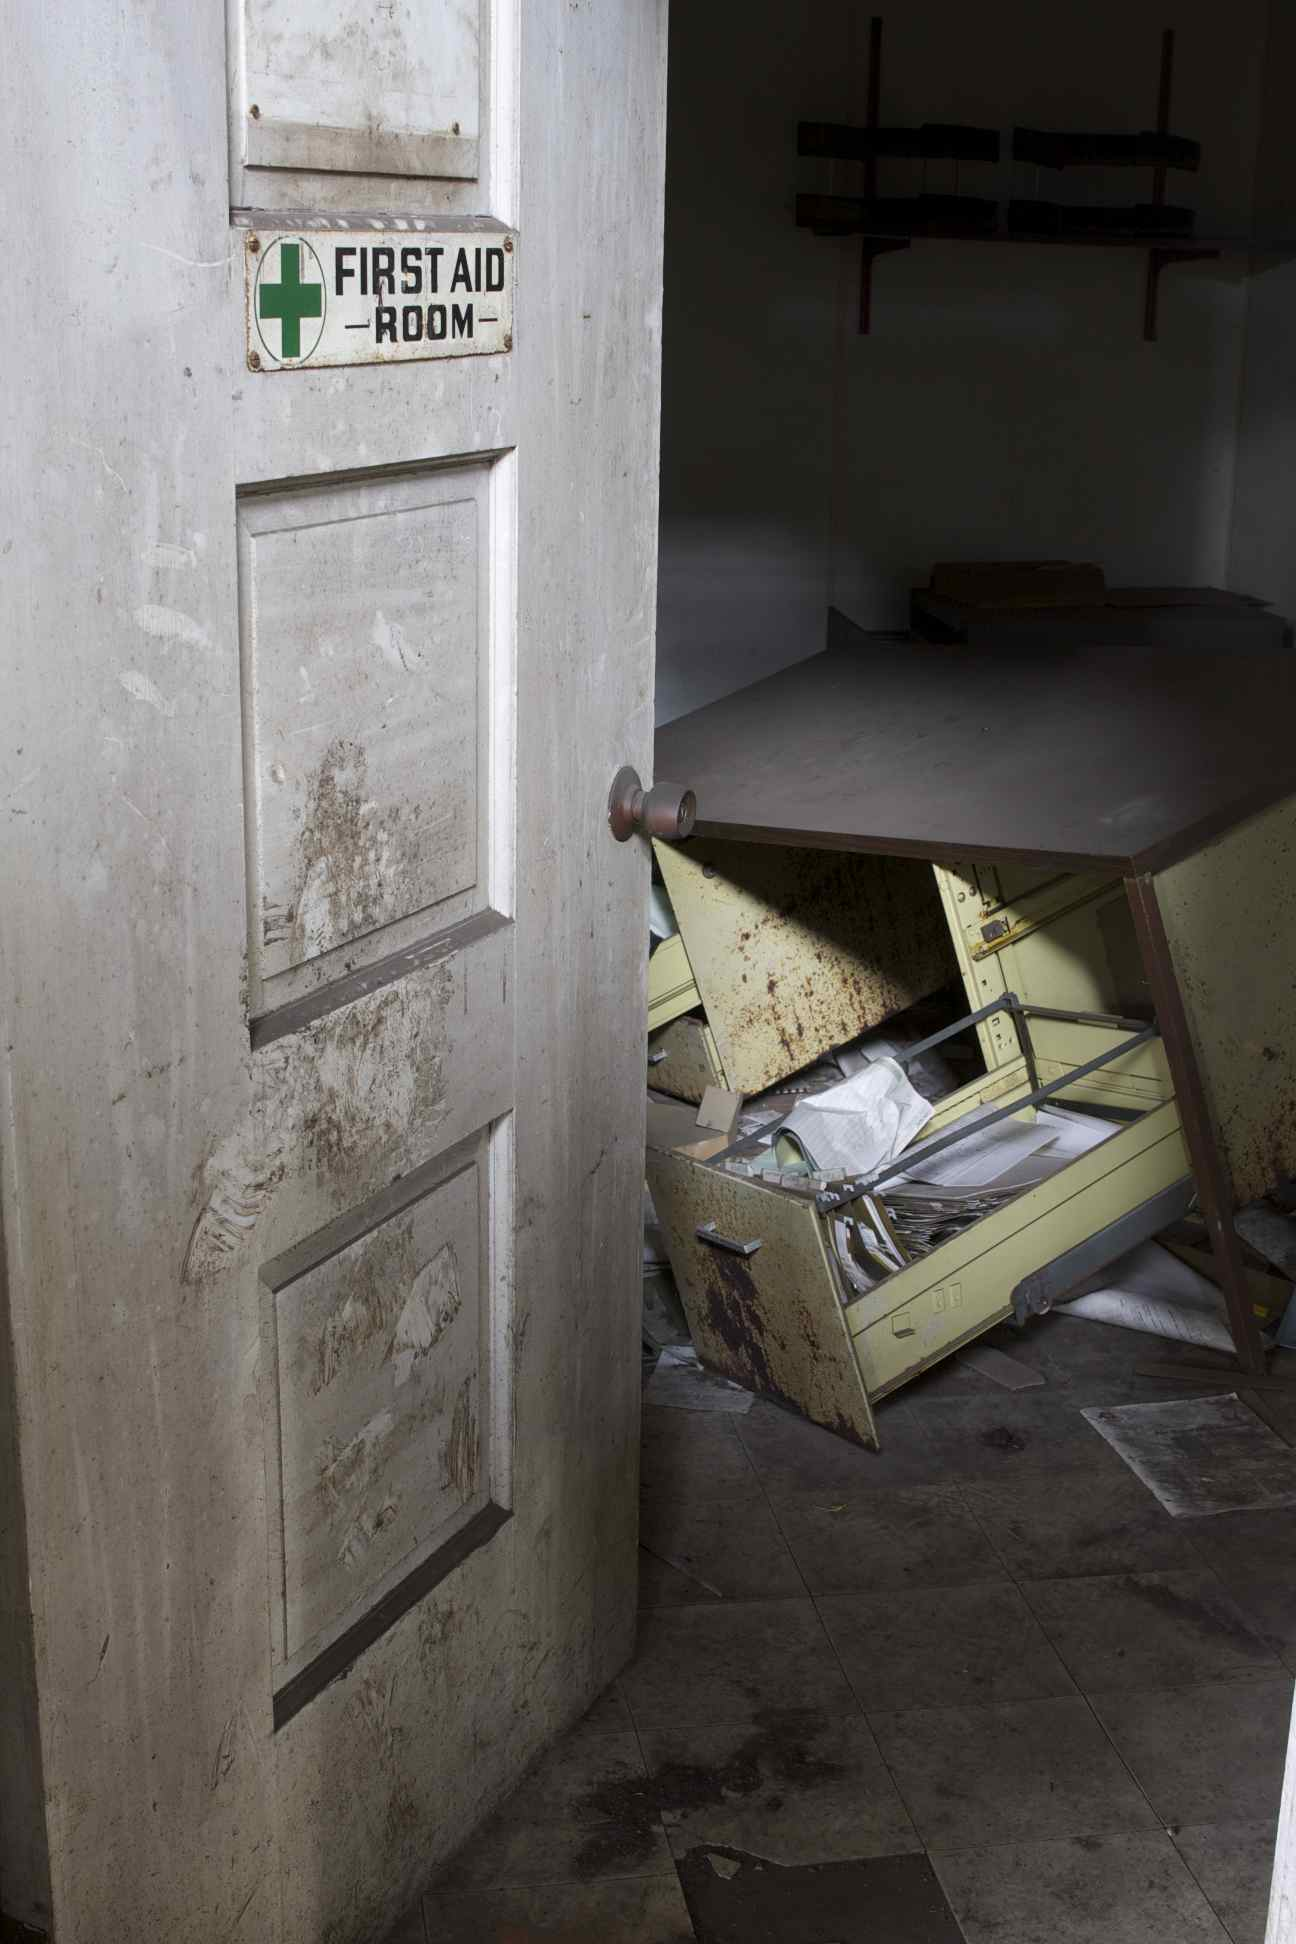 Fort Pitt Foundry: Dilapidated First Aid Room